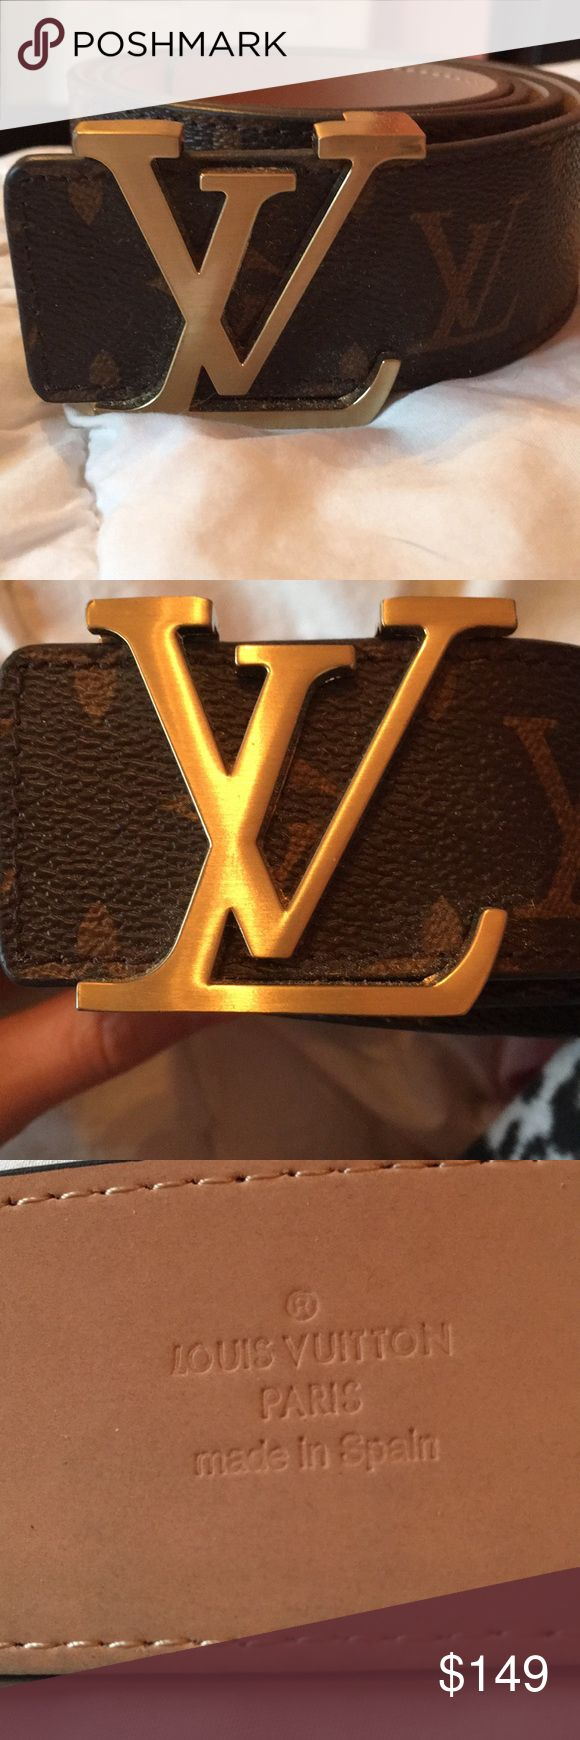 Unisex Original Louis Vuitton Belt Louis Vuitton Belt for both male and women  Brand new without tags Received as a gift and never worn 10/10 condition  asking 149 OBO. Flexible with price Louis Vuitton Accessories Belts